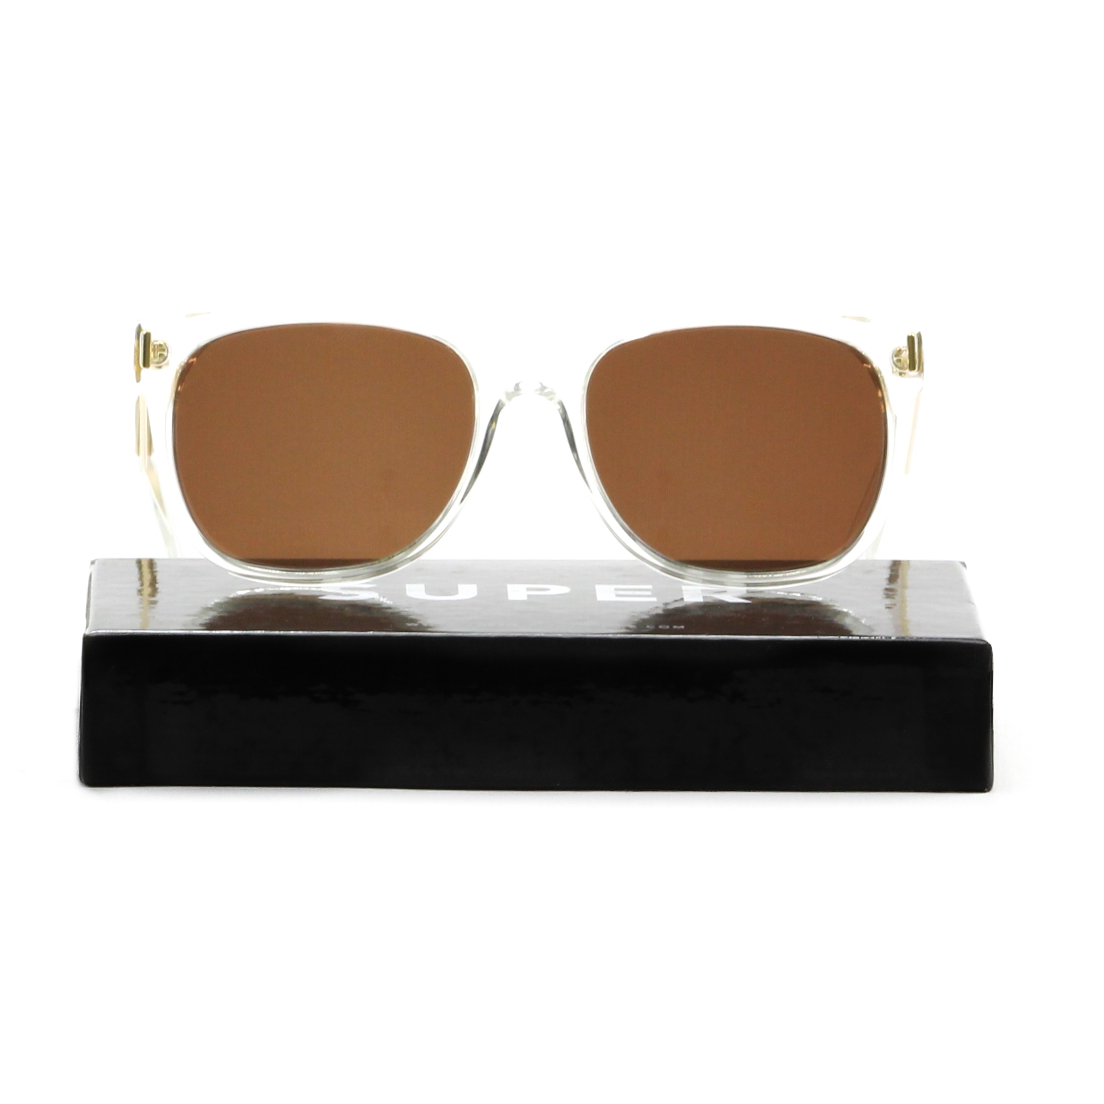 3ae16abfd98 RETROSUPERFUTURE Super Flat Top Sunglasses 893 Gold Francis Crystal   Brown  Lens